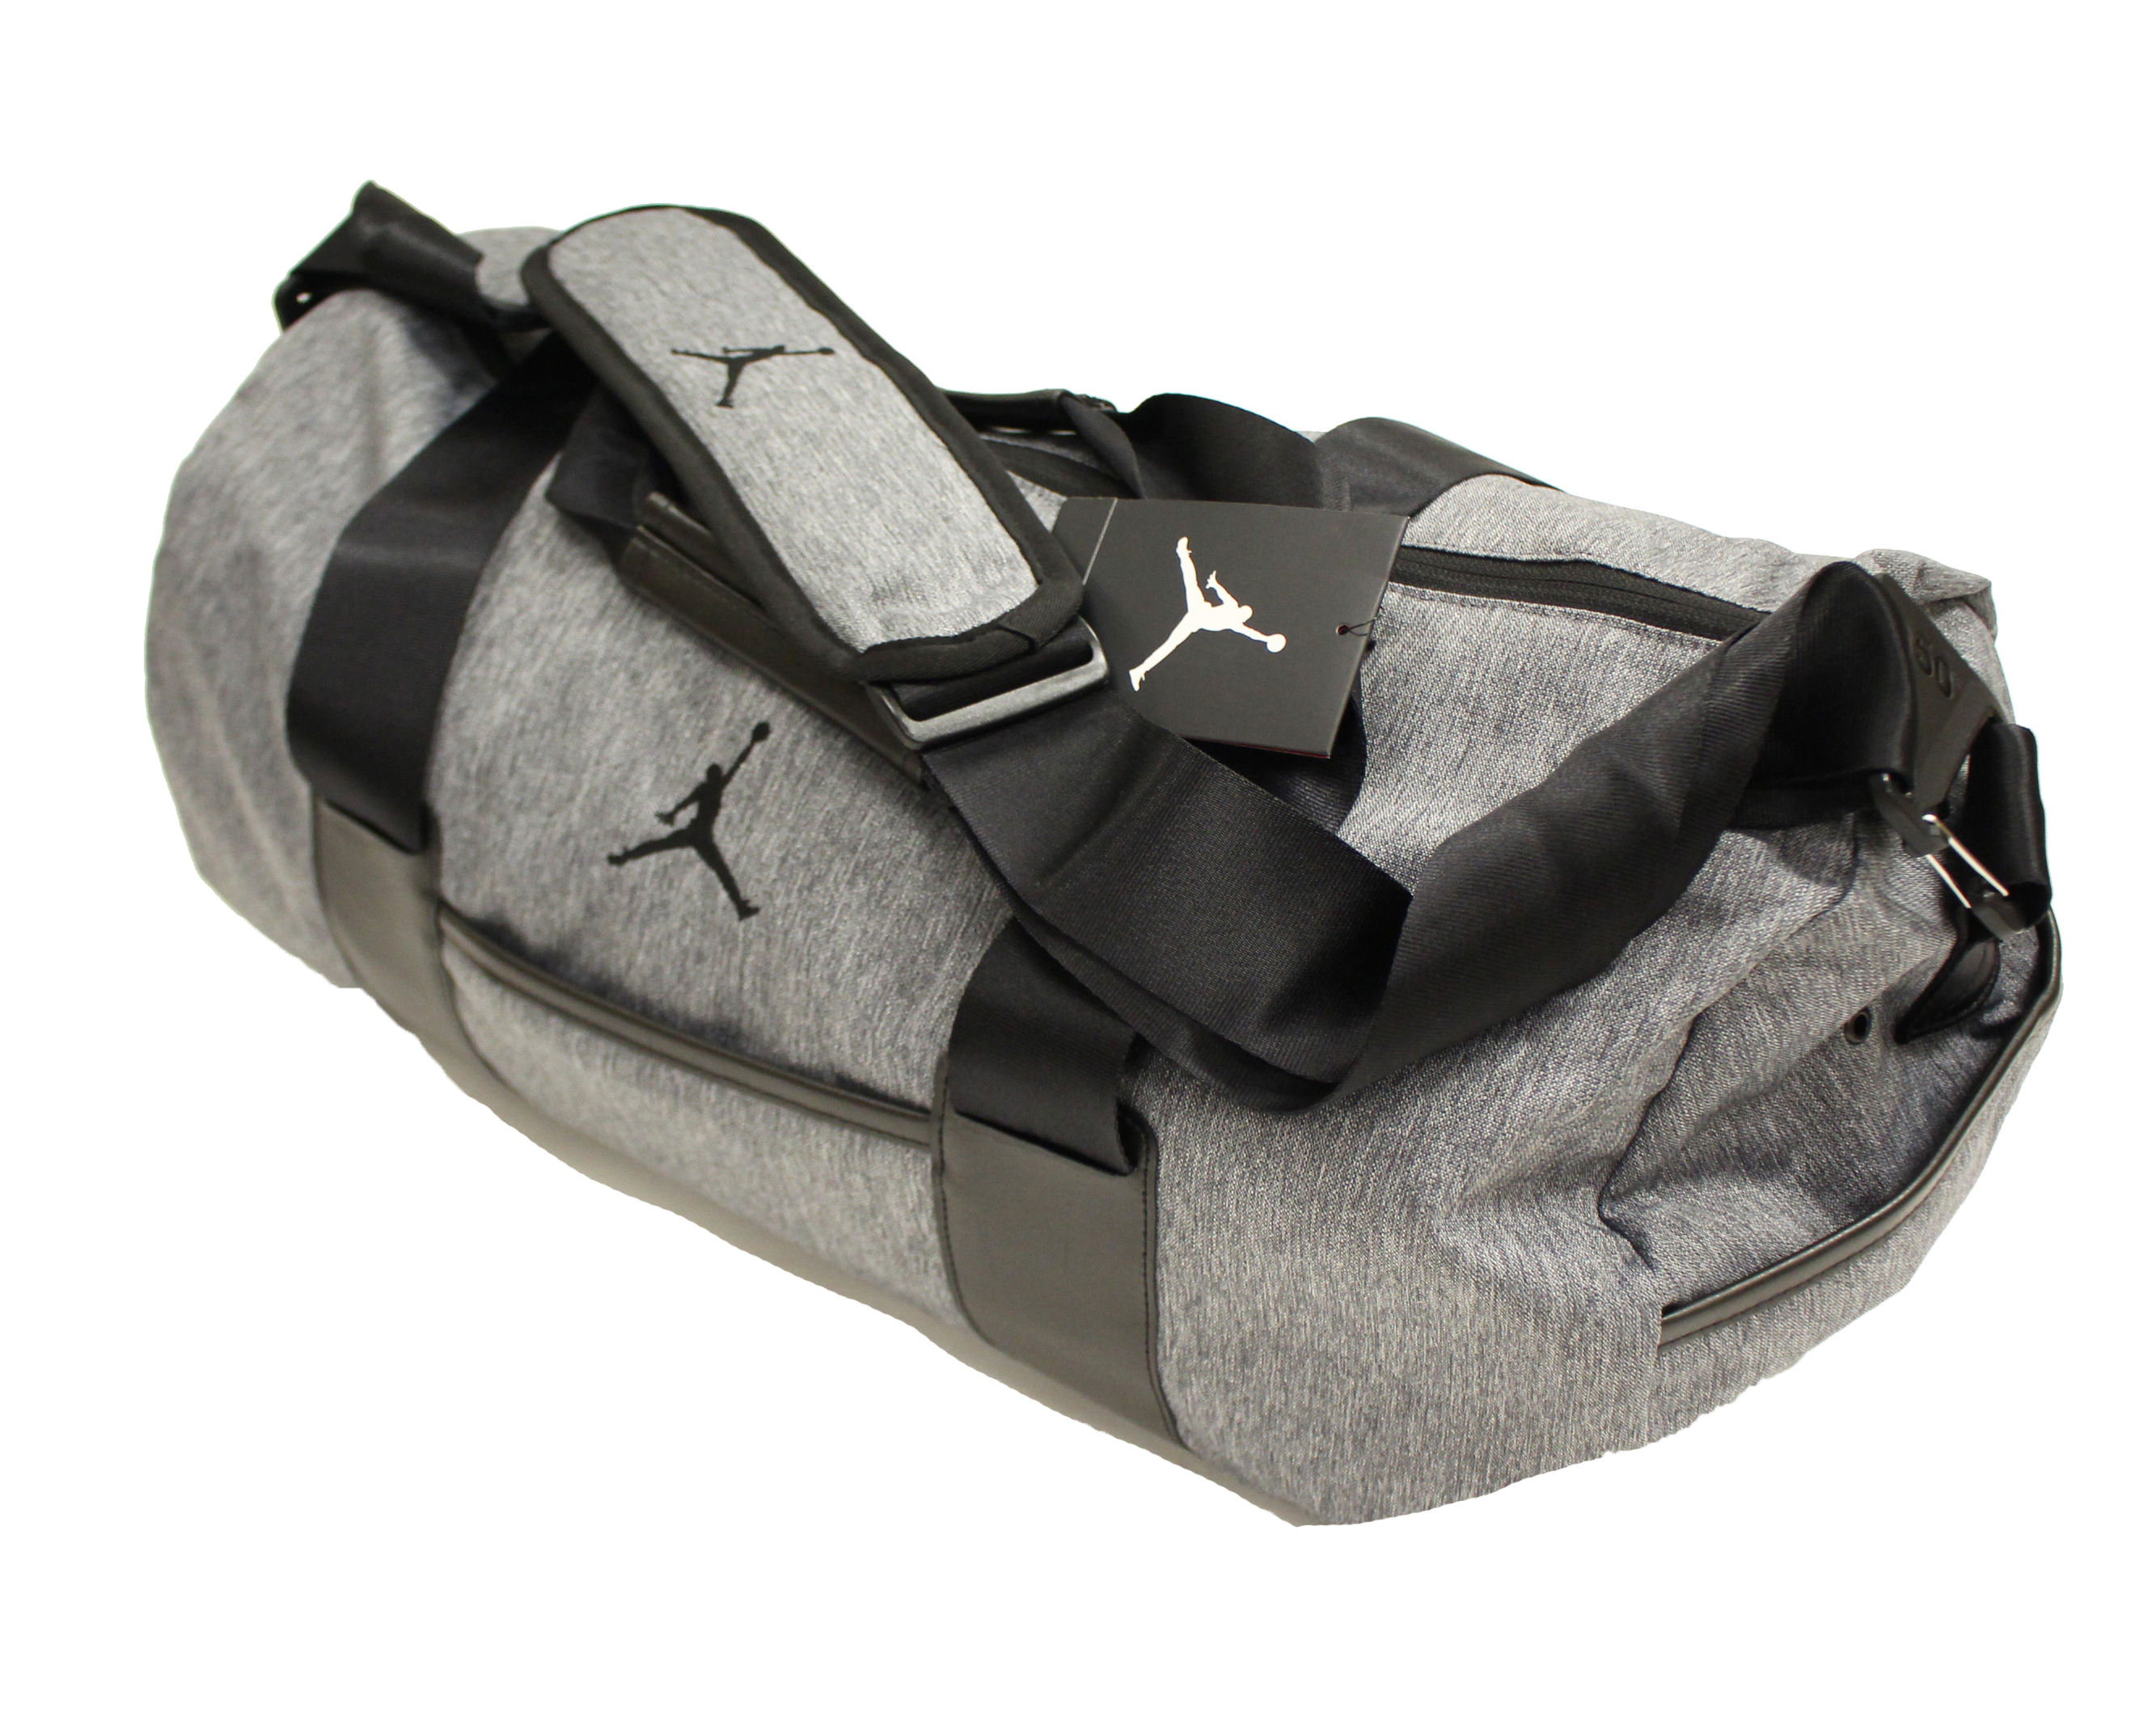 c3c937acc5e1 NIKE AIR JORDAN UNSTRUCTURED DUFFEL BAG DARK HEATHER GREY BLACK BA8064 063  - Walmart.com